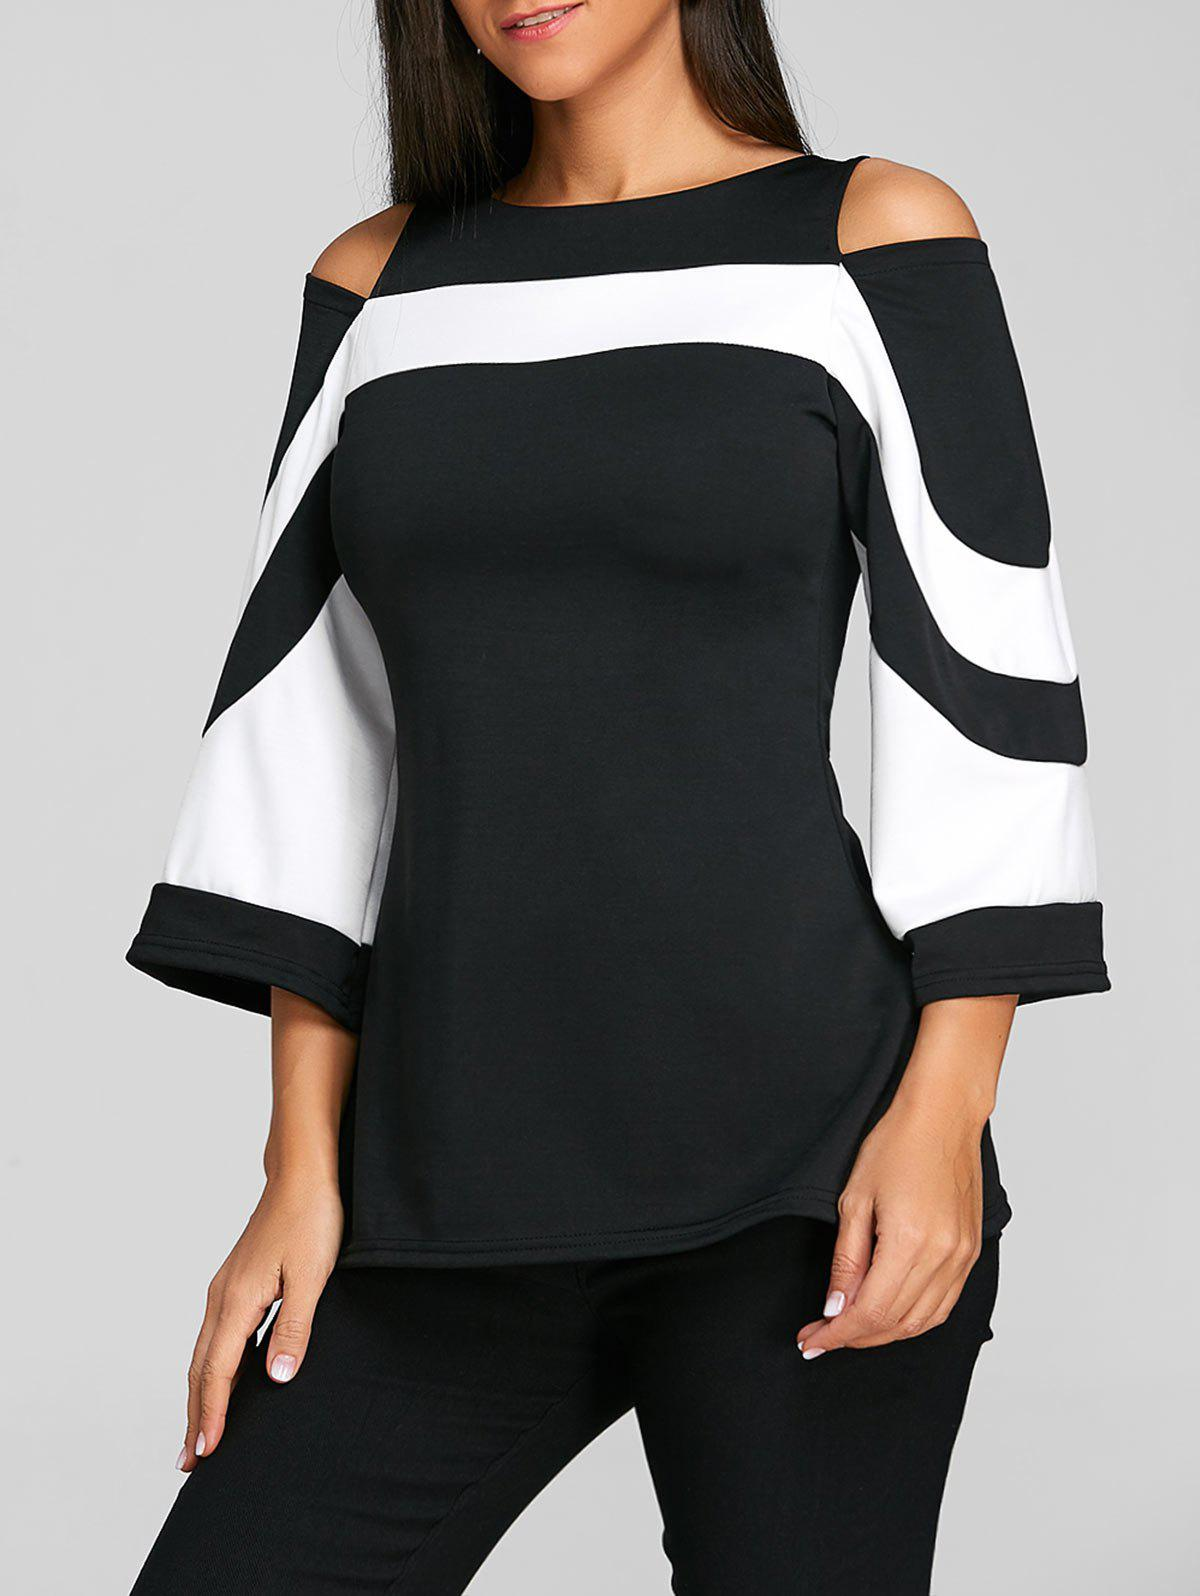 461592d1c64079 40% OFF   2019 Two Tone Cold Shoulder Blouse